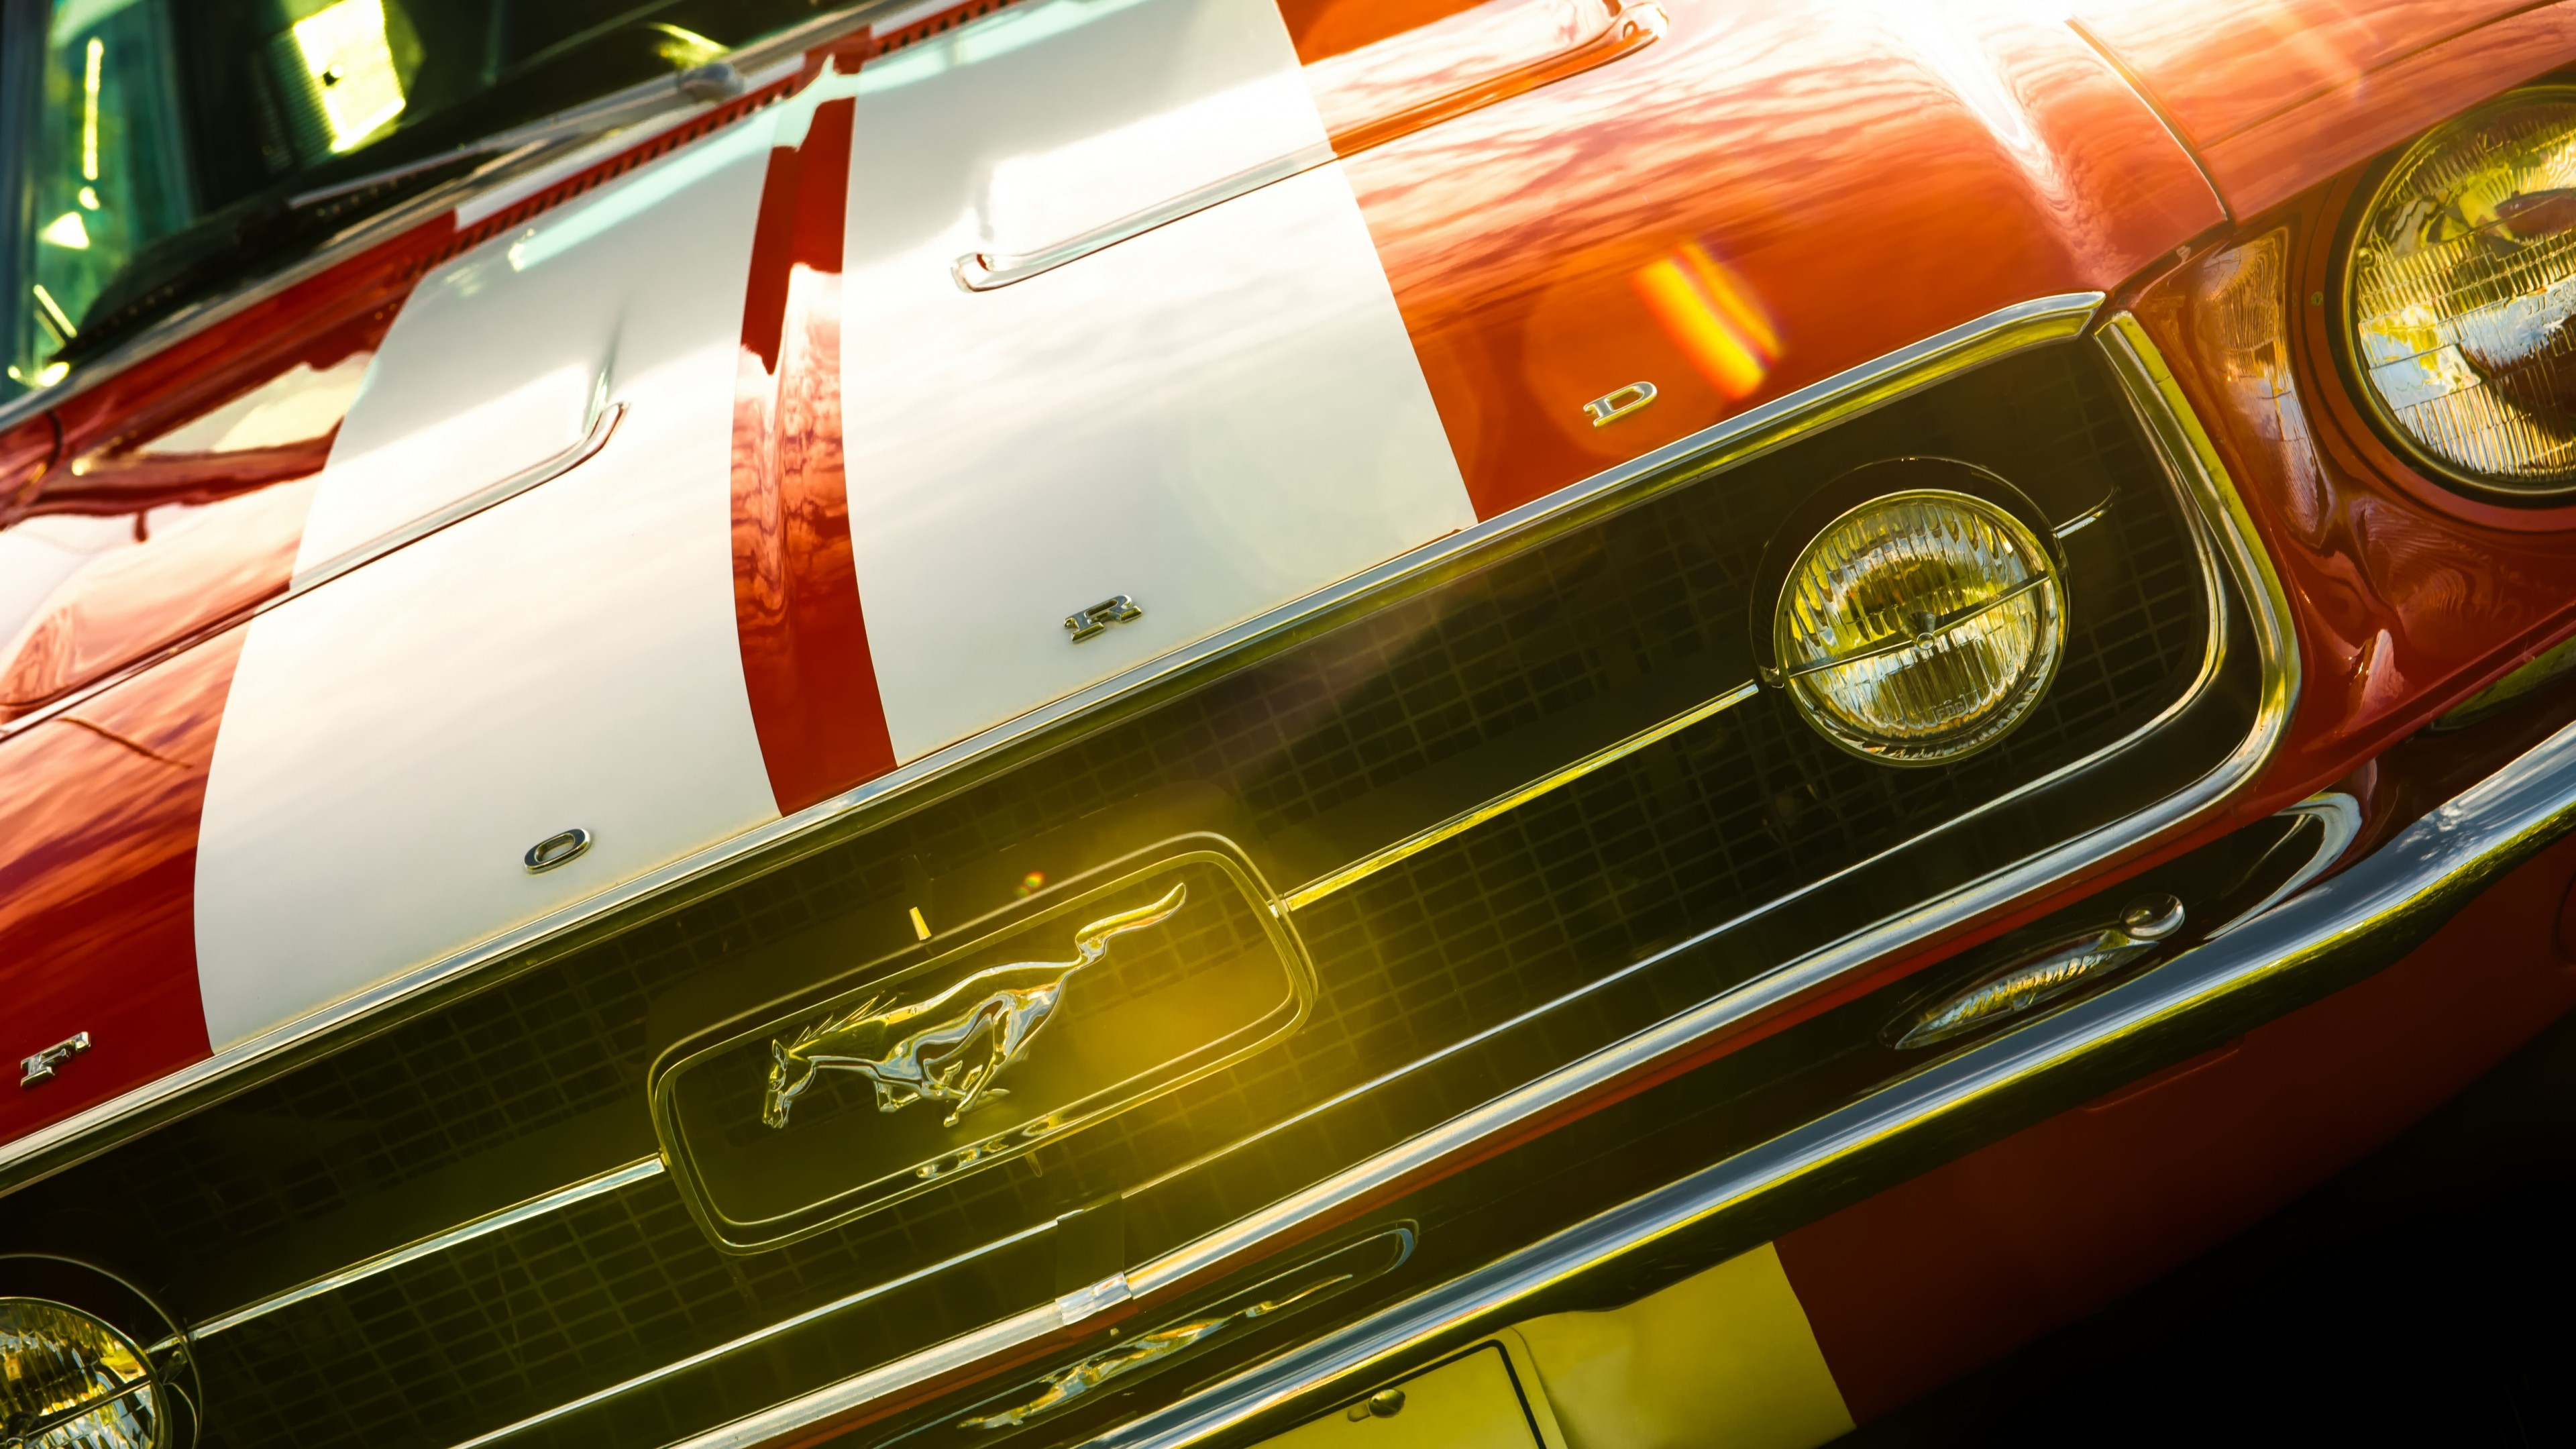 Res: 3840x2160, Tags: Ford Mustang